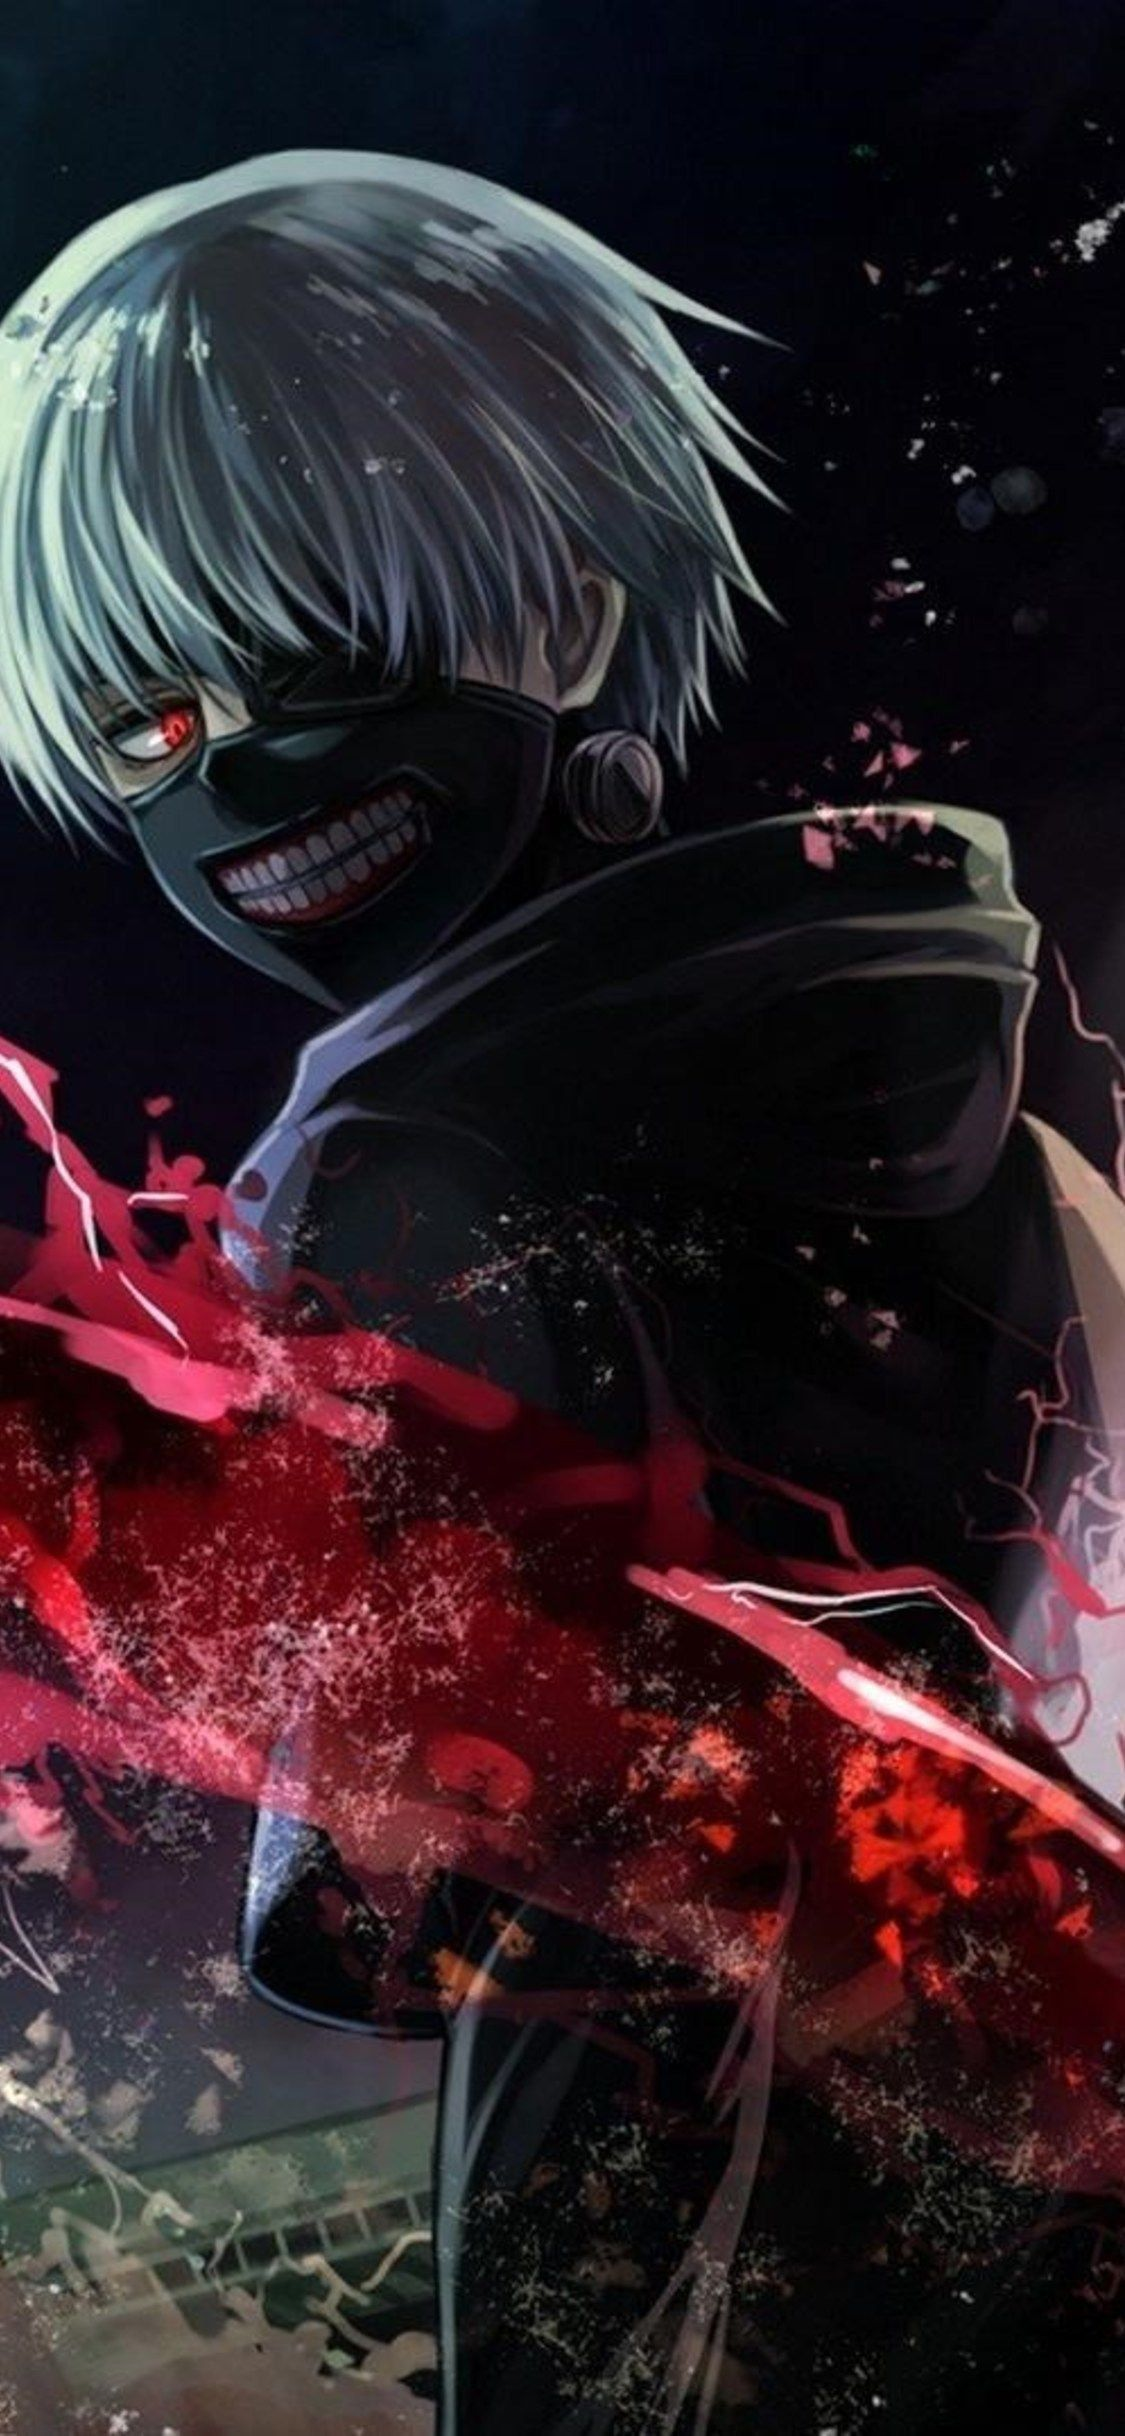 Unique tokyo ghoul designs on hard and soft cases and covers for iphone 13, 12, se, 11, iphone xs, iphone x, iphone 8, & more. Tokyo Ghoul Mobile Wallpapers - Wallpaper Cave